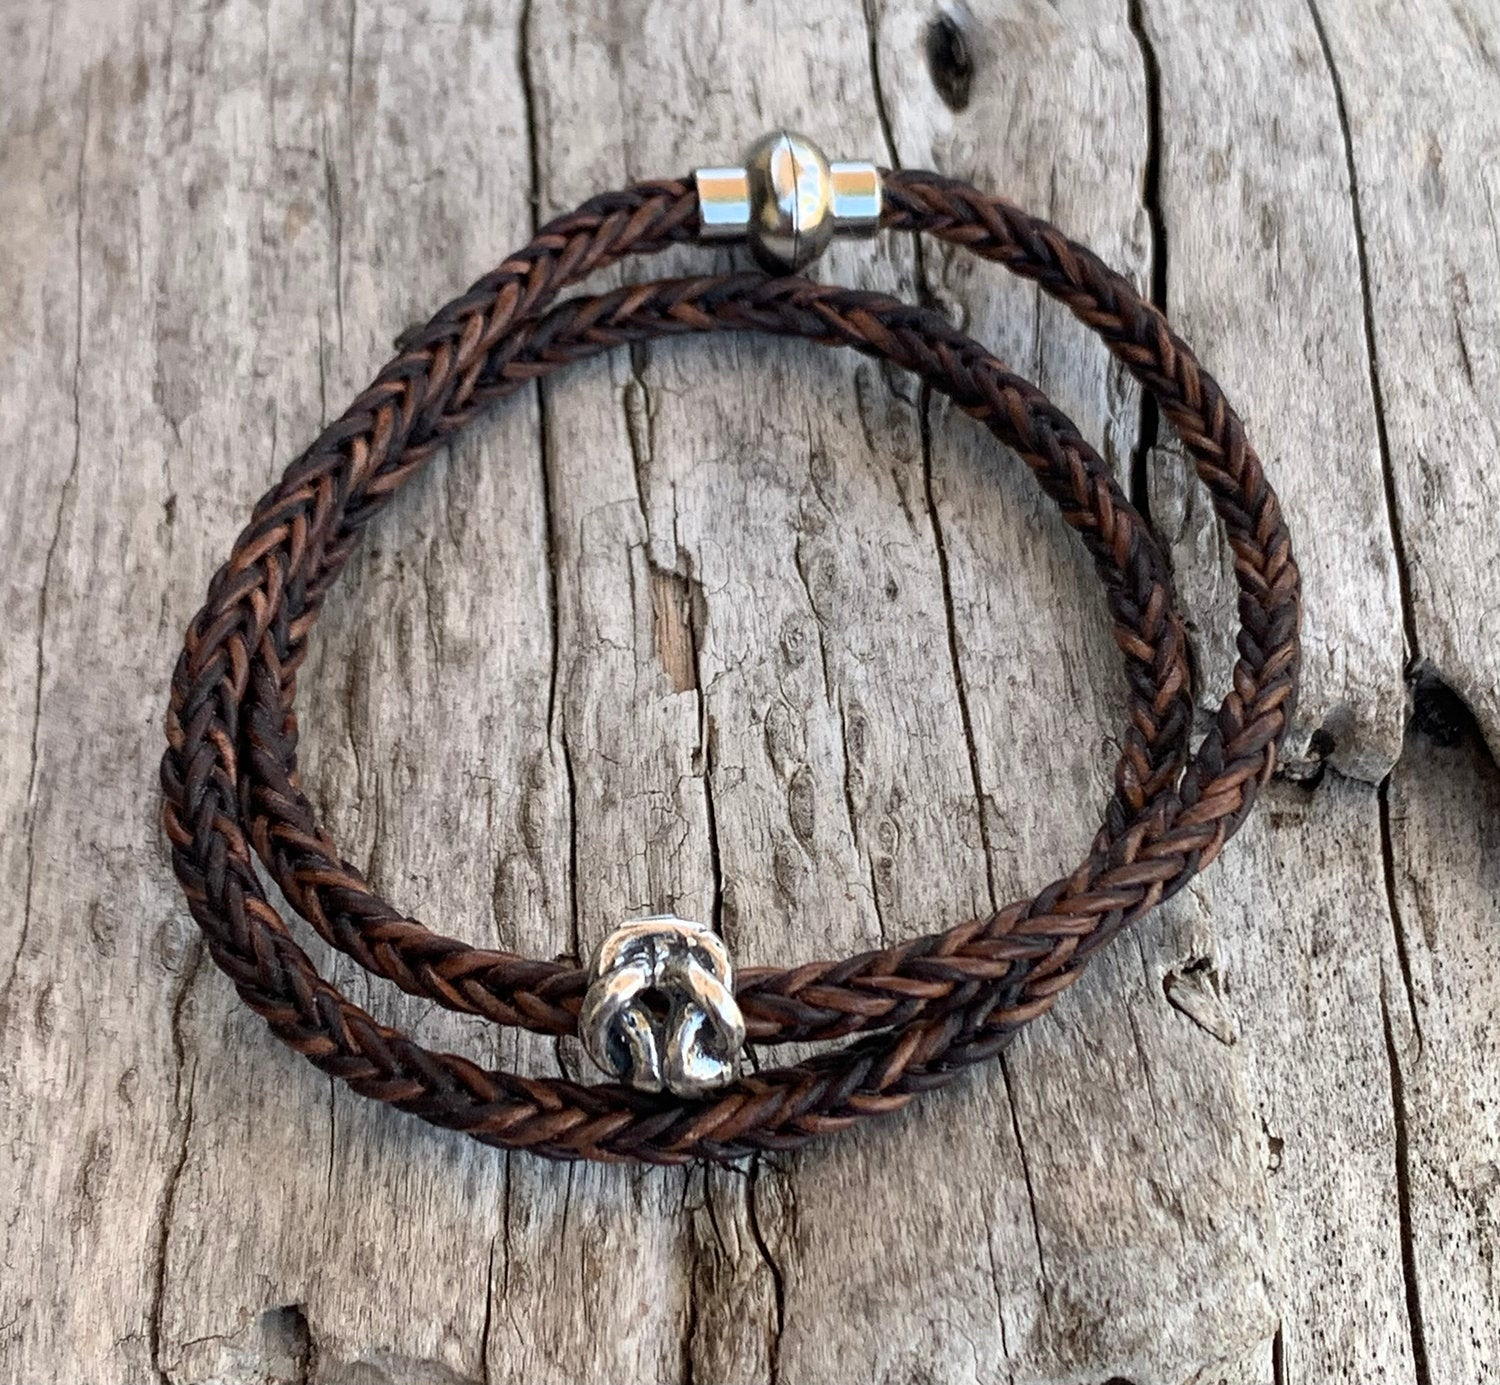 Handmade Sterling Silver Knot Double Wrap 4MM Braided Leather Bracelet with Magnetic Closure